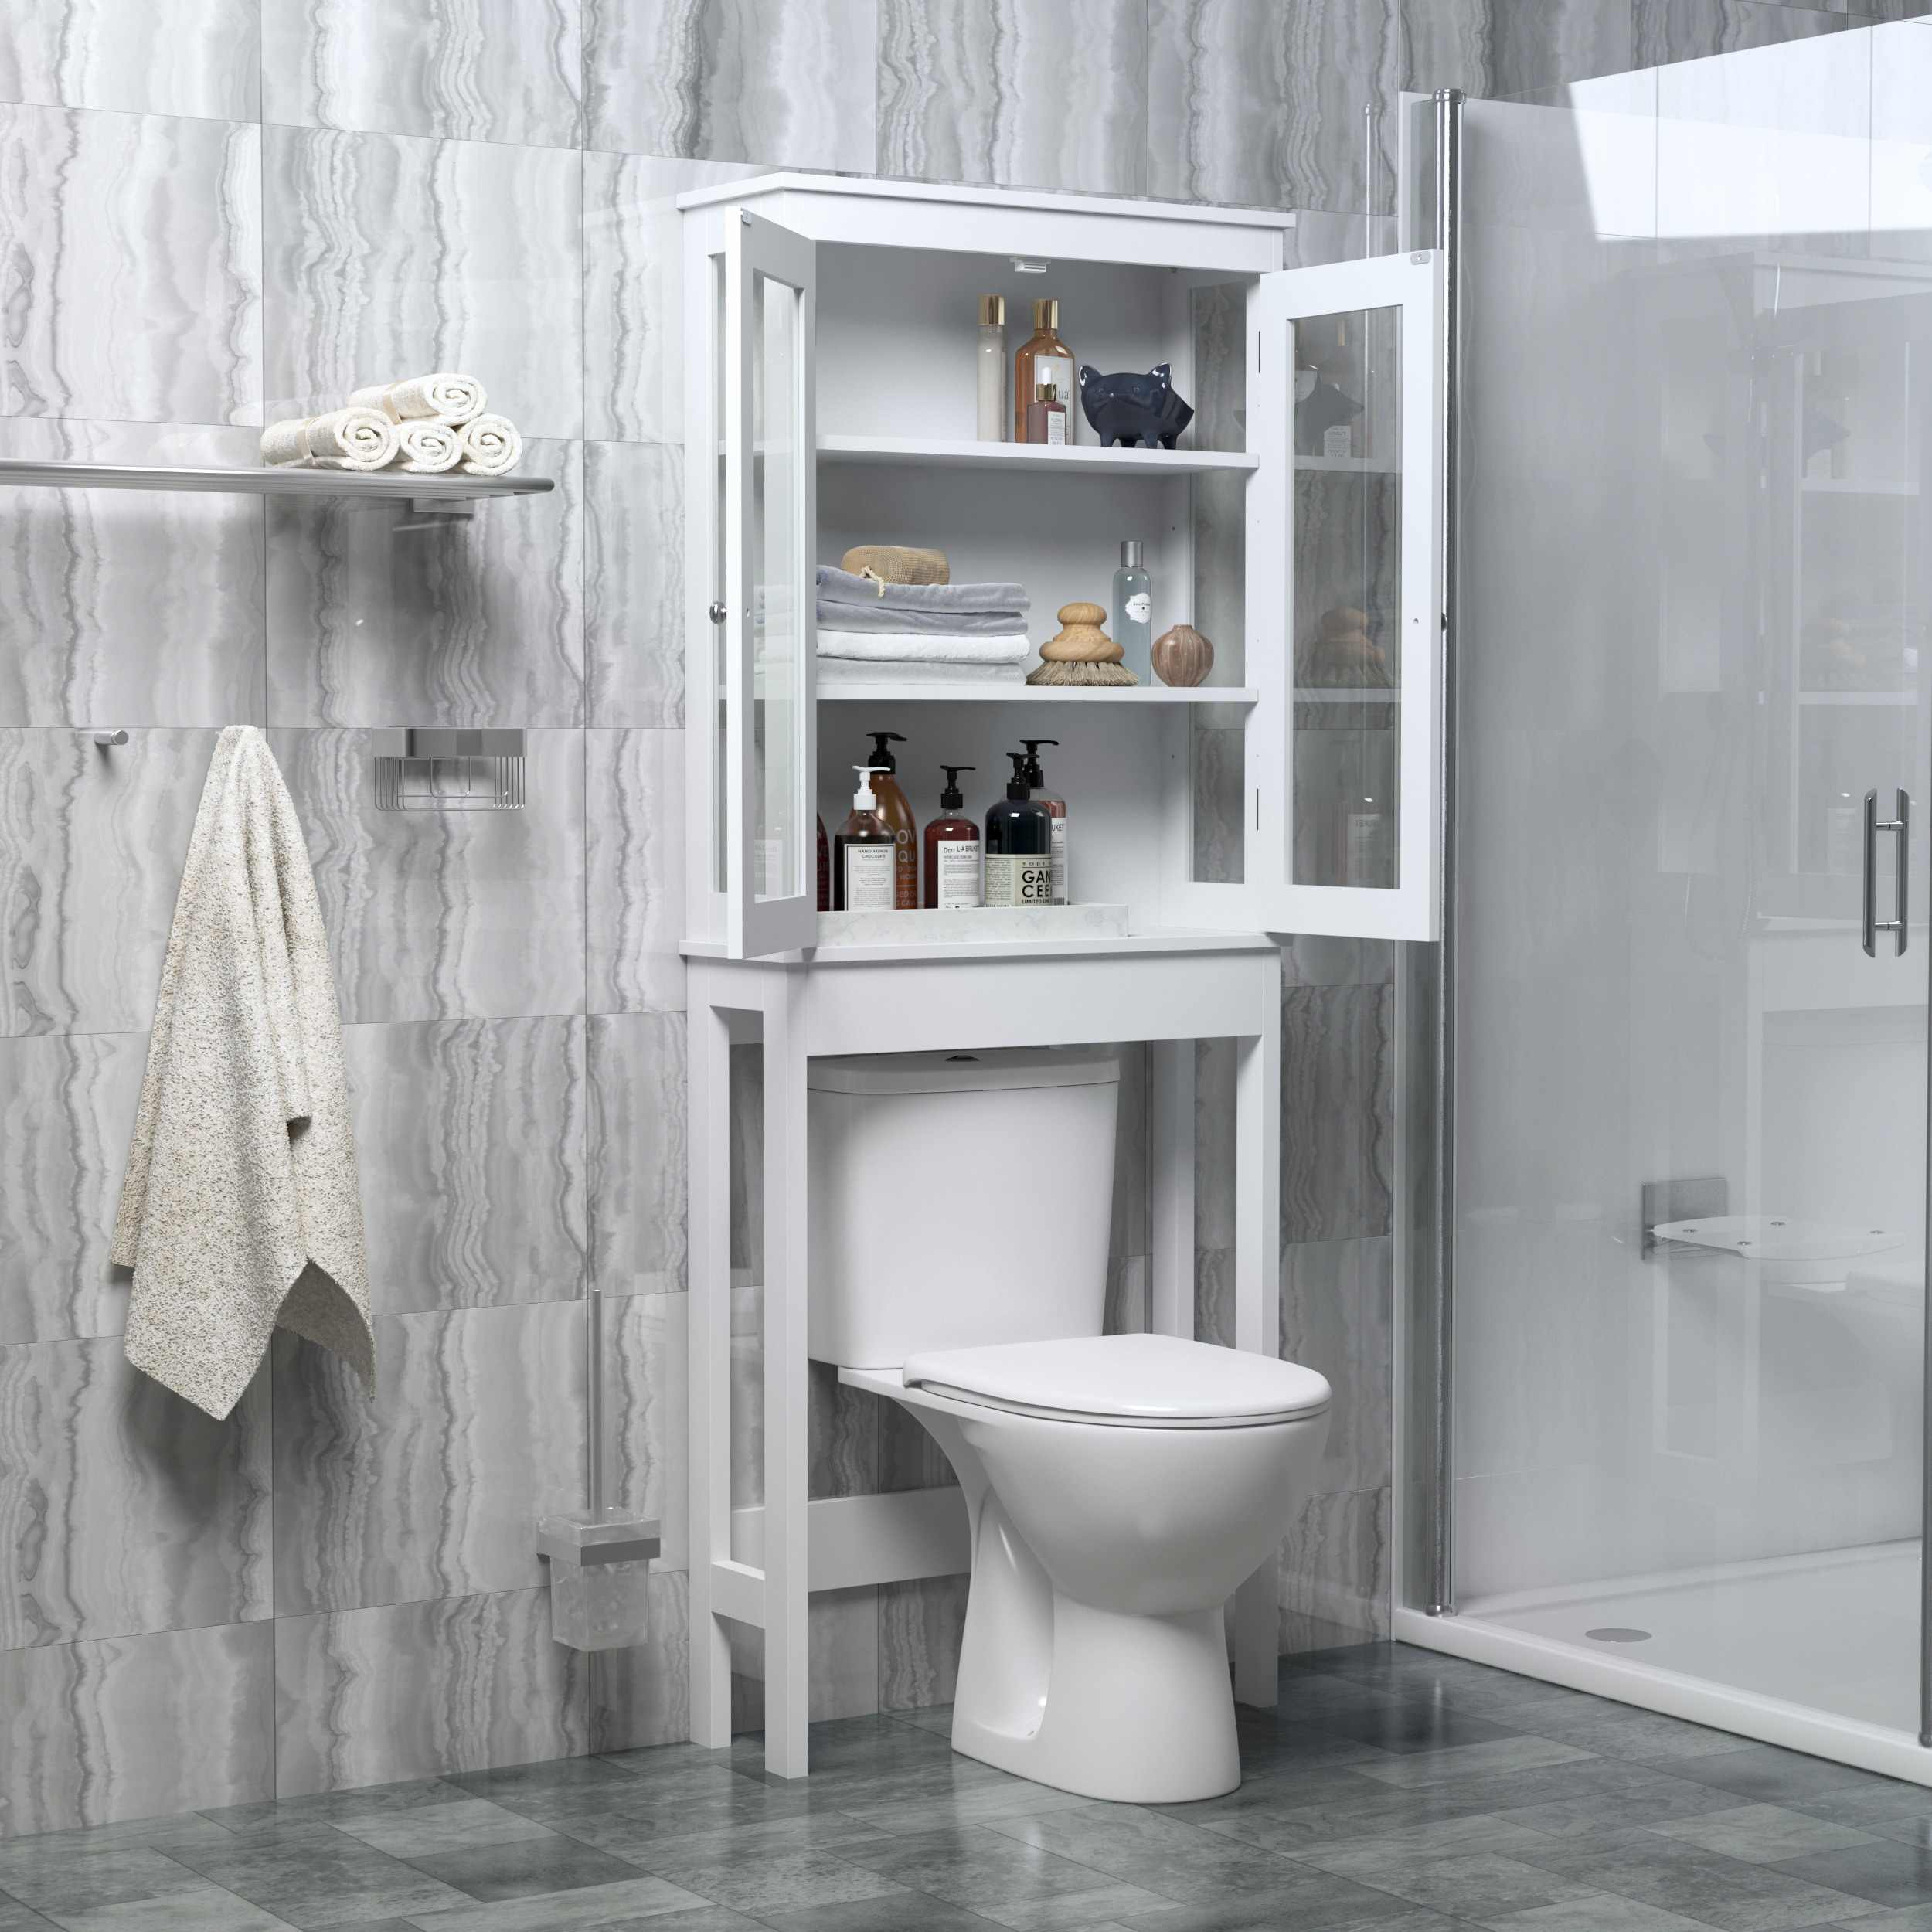 66*22*165cm Over The Toilet Storage Cabinet Bathroom Shelves Organizer Space Saver Bath Rack